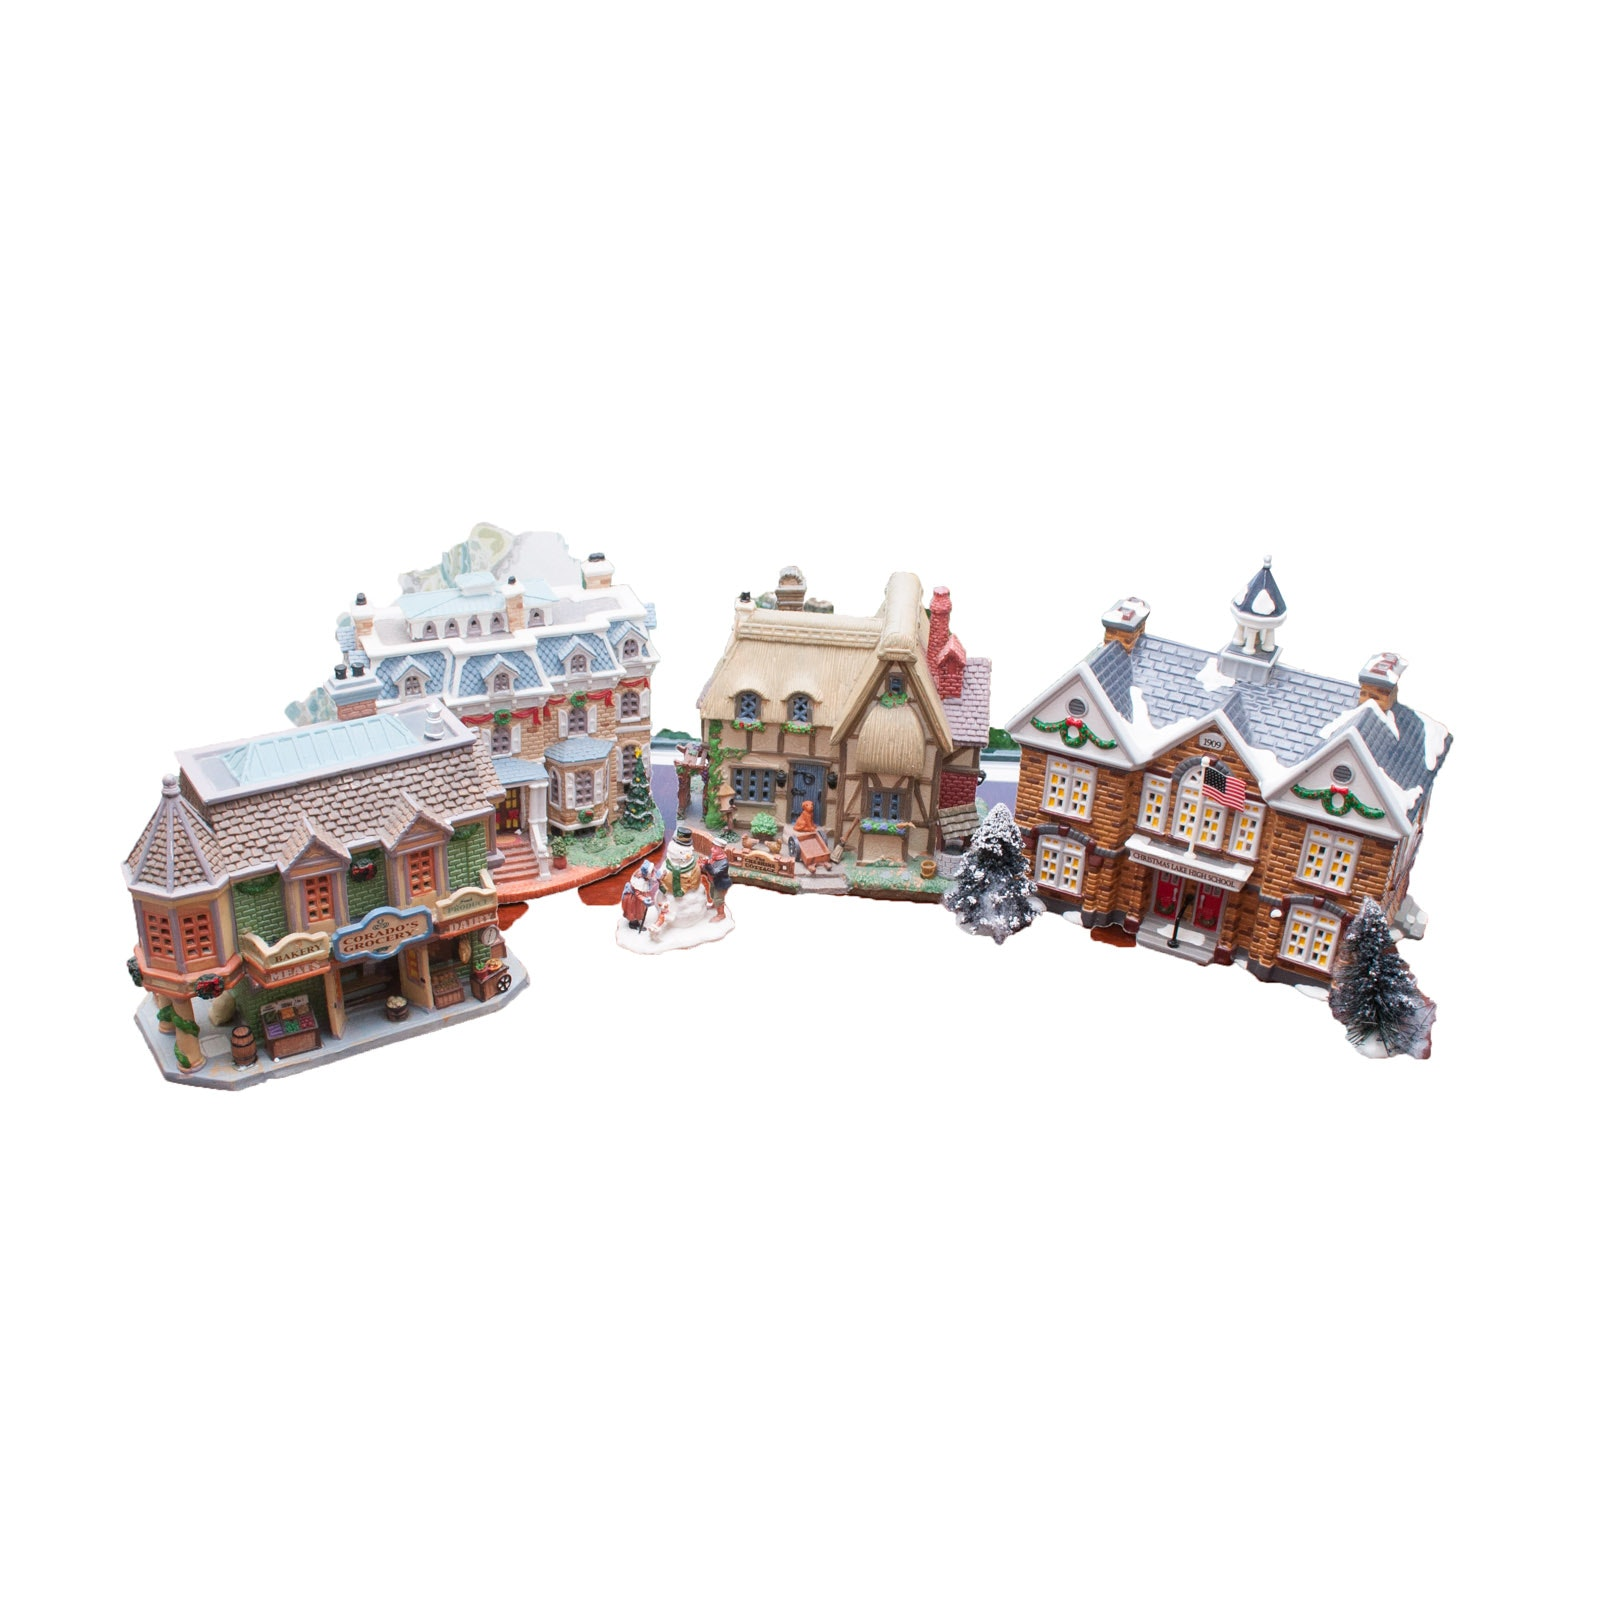 Lemax and Department 56 Christmas Village Collectibles